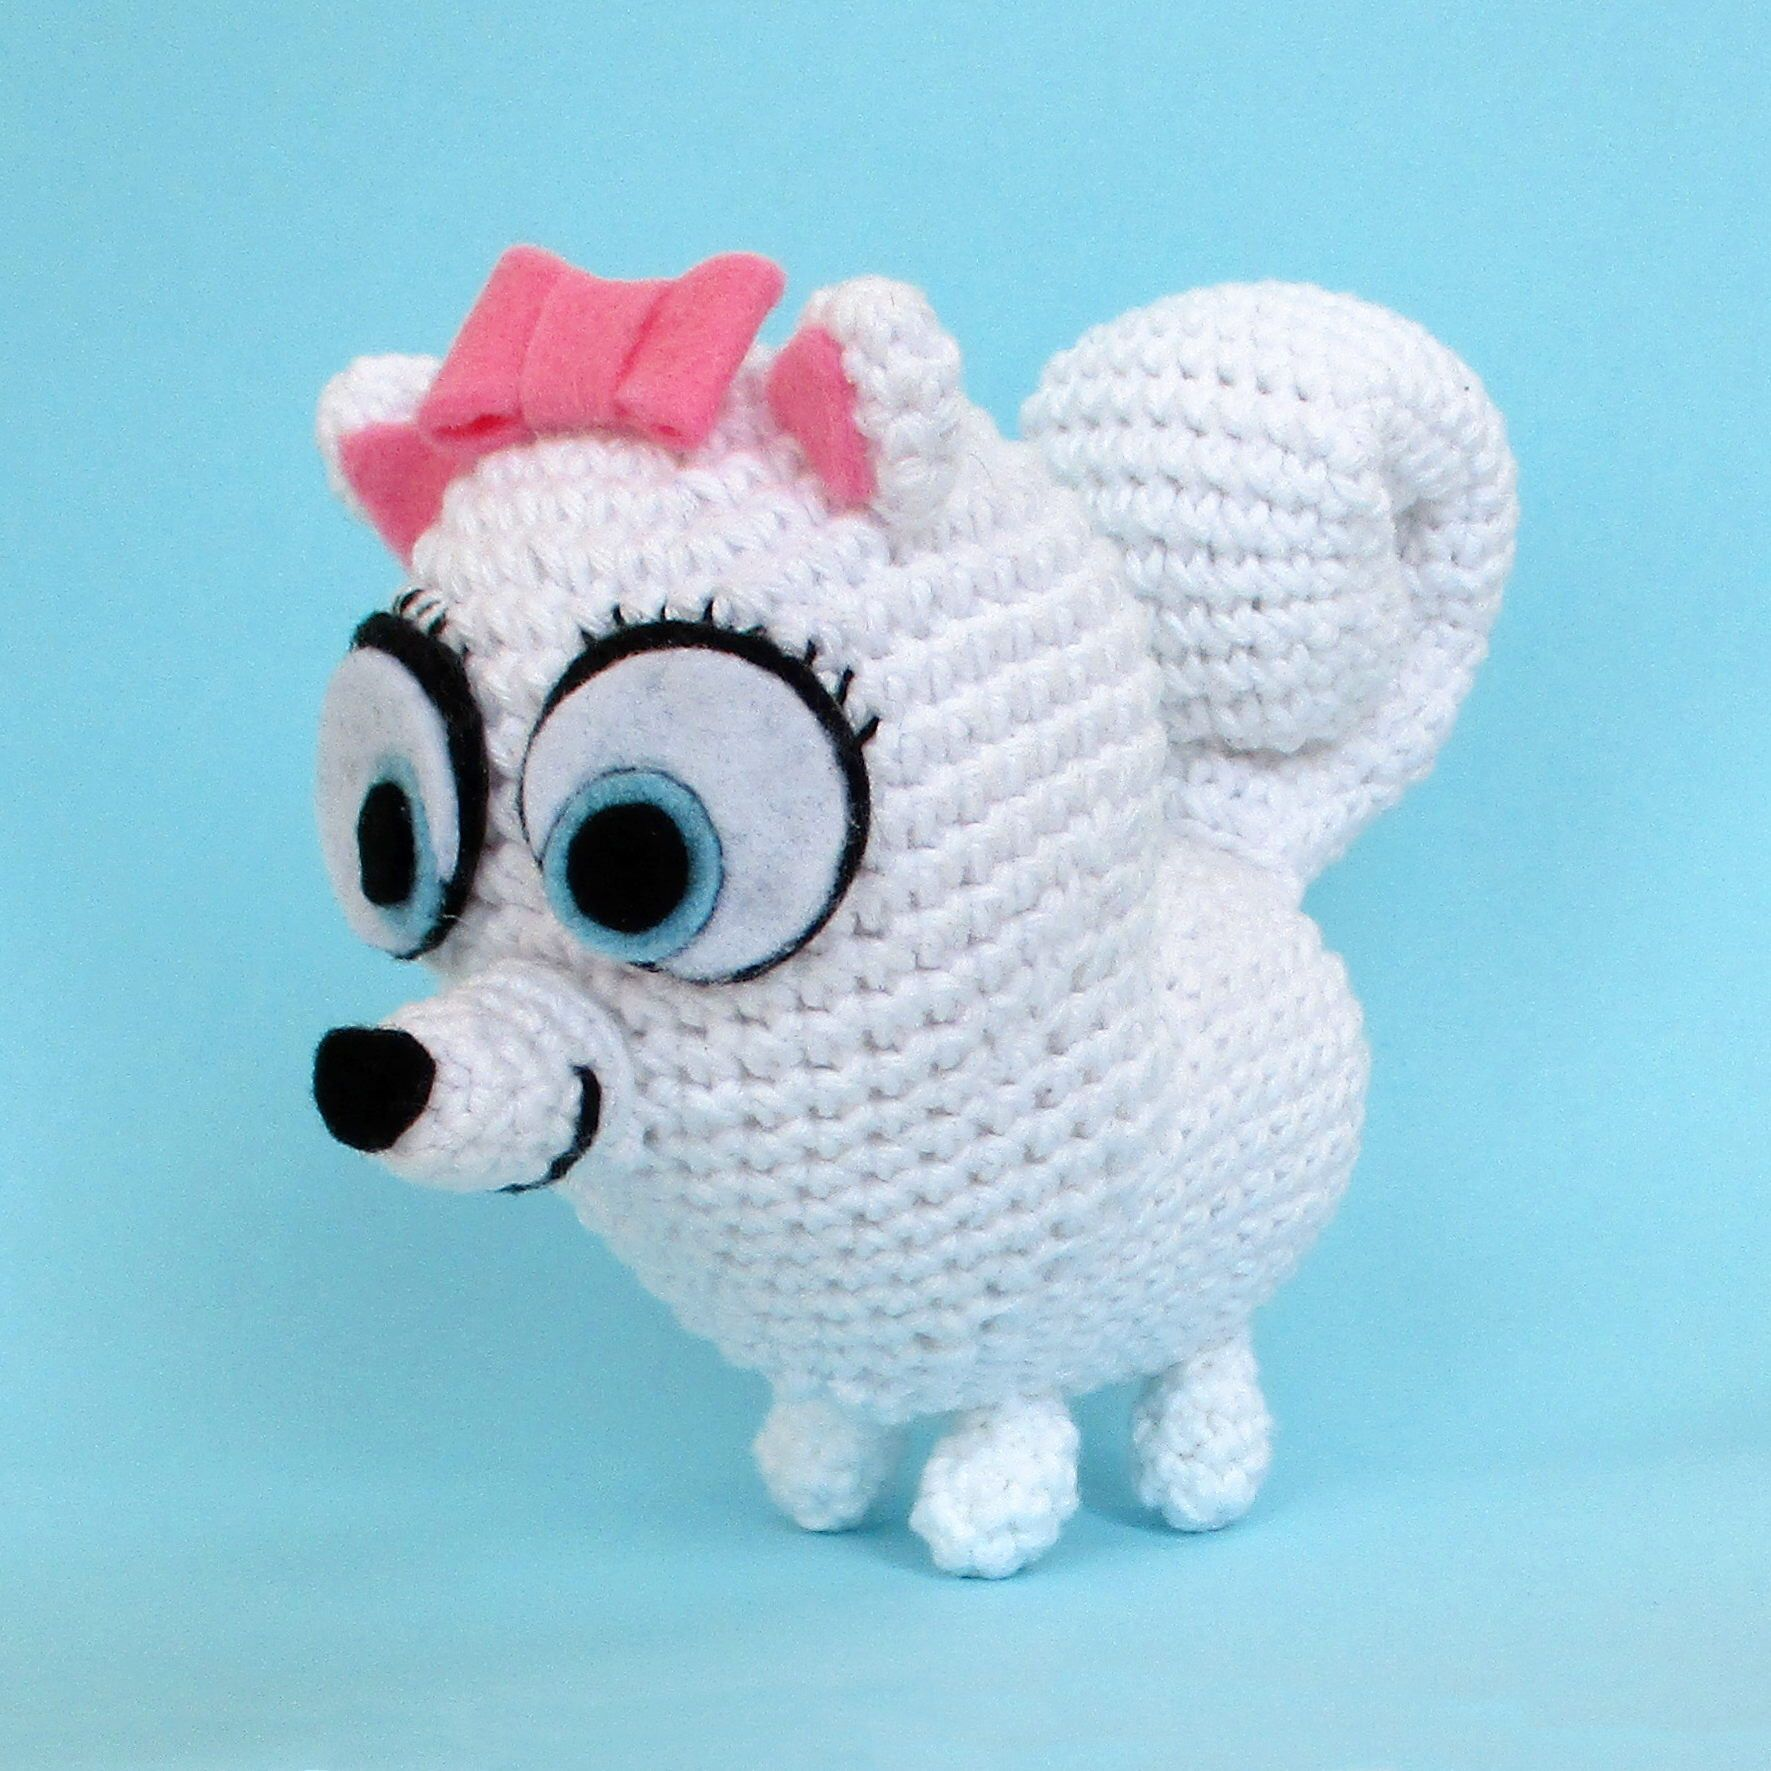 Gidget Amigurumi Crochet Pattern Secret Life Of Pets Crochet